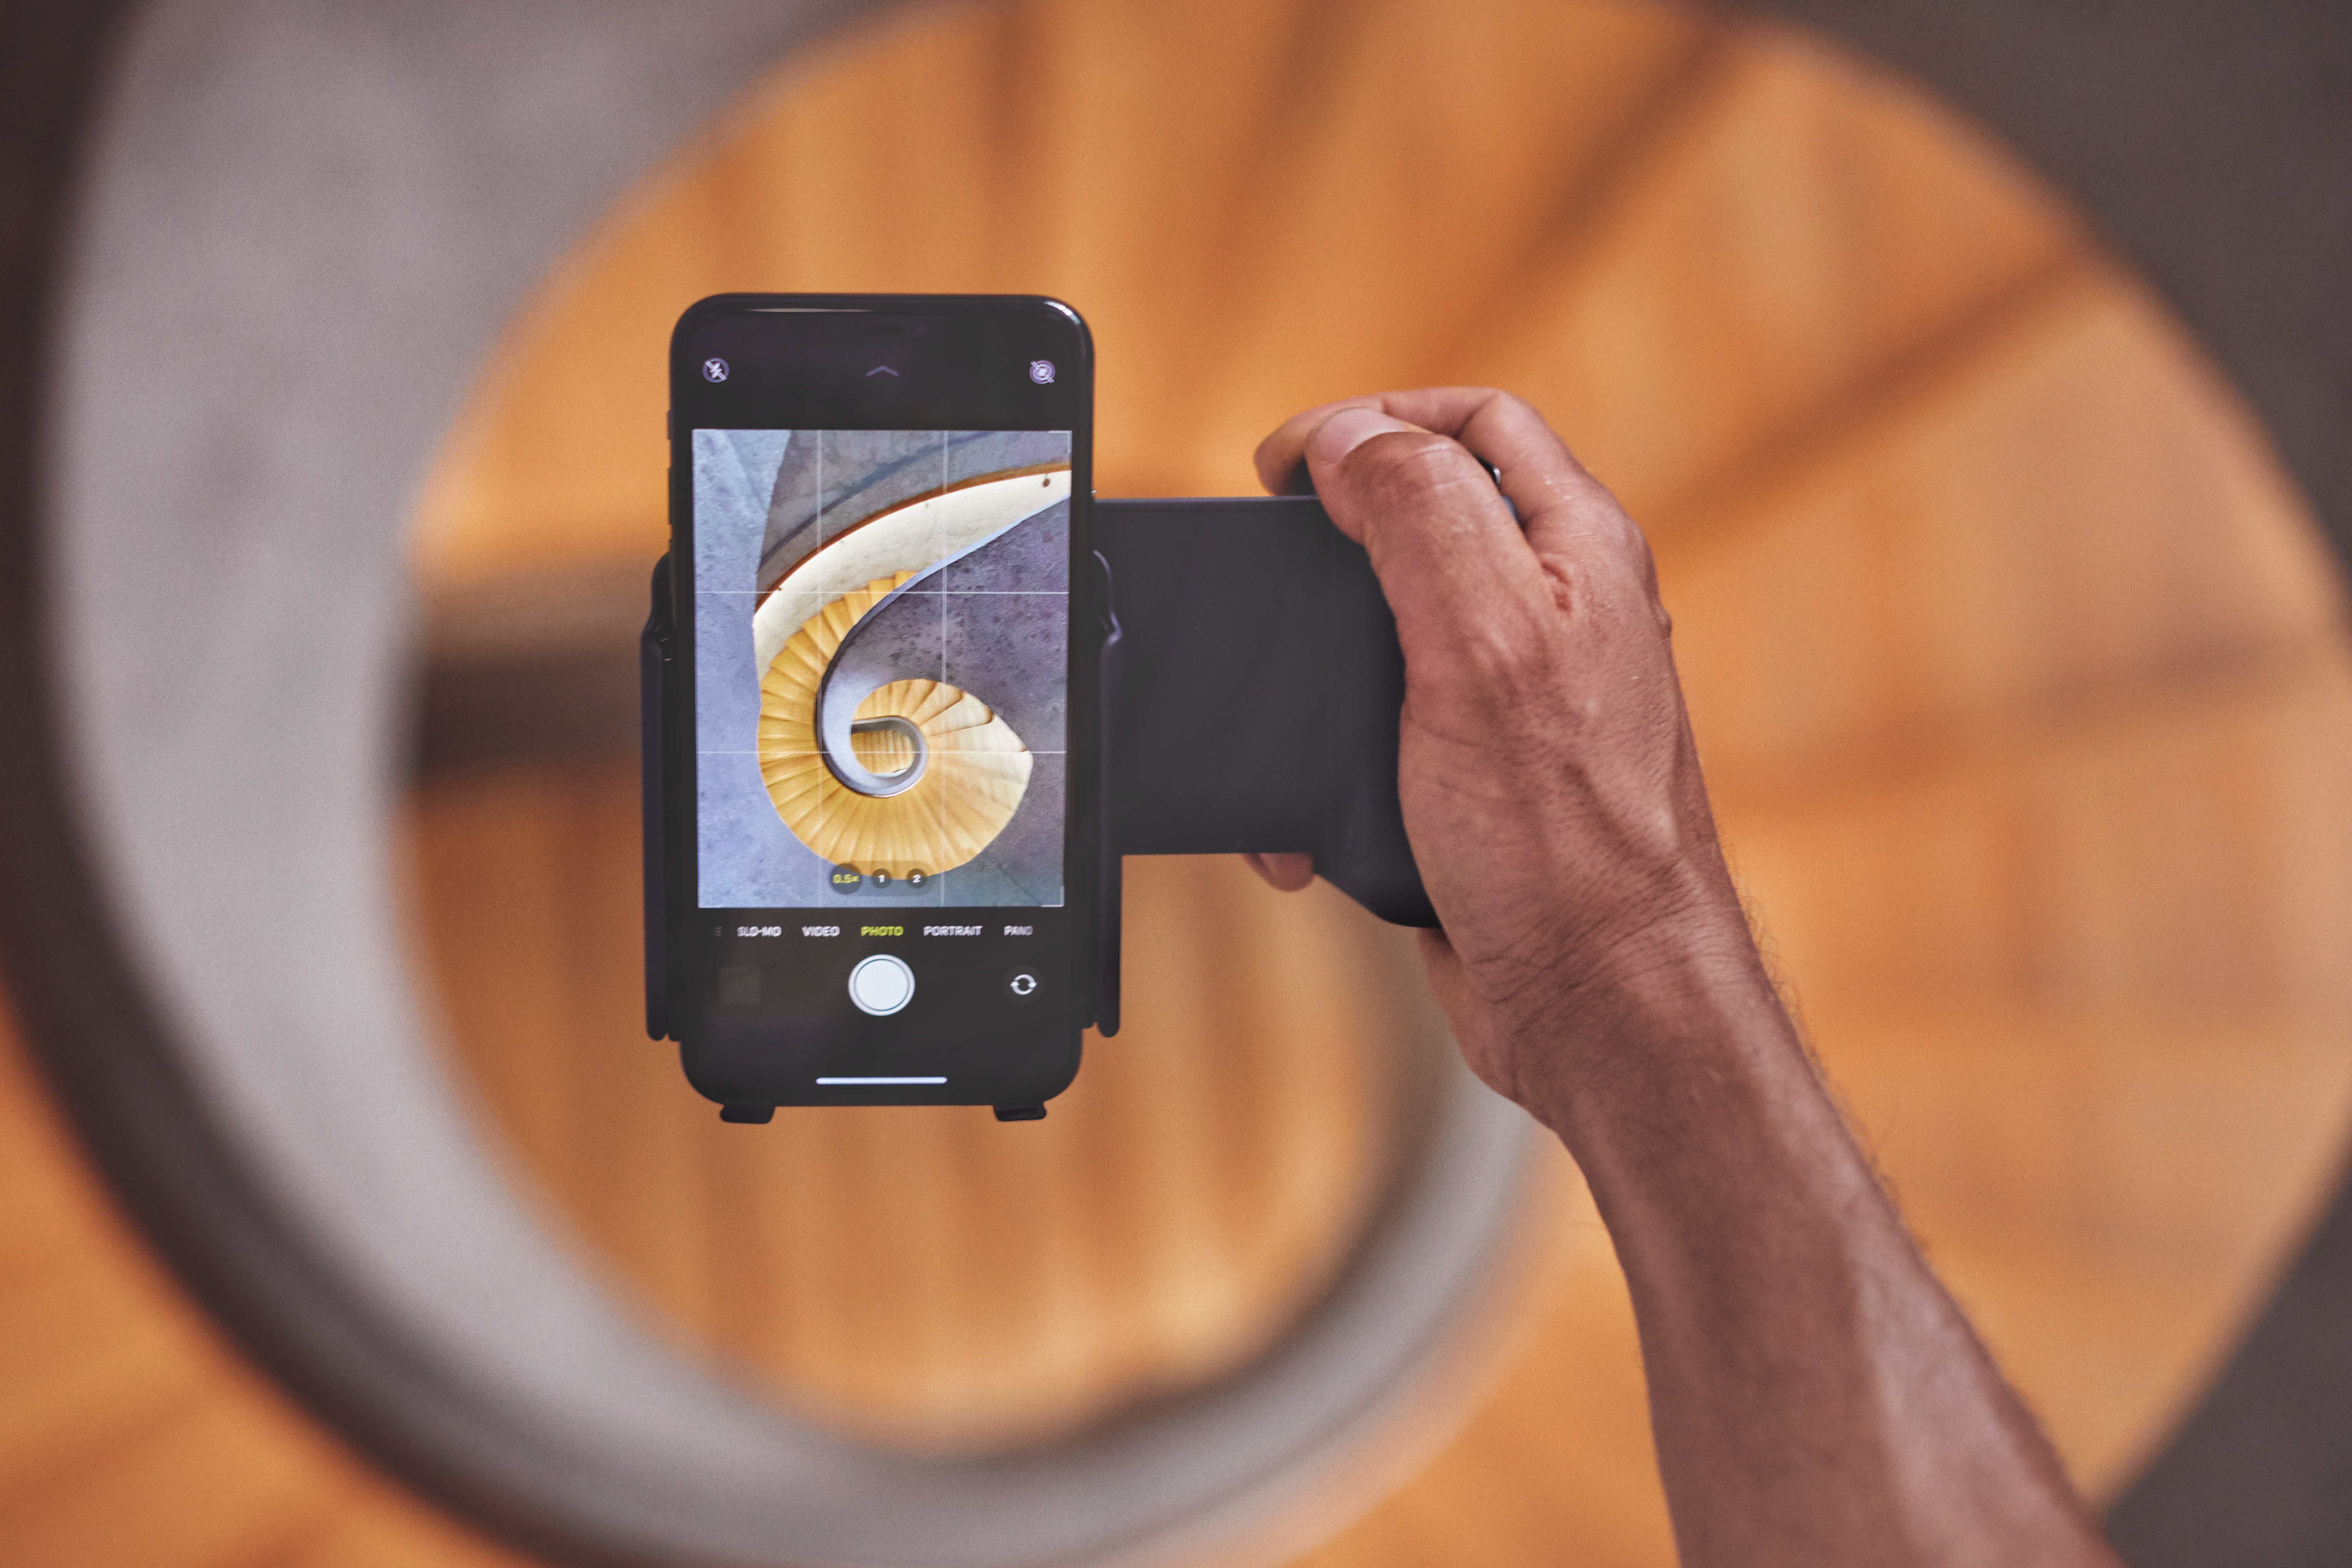 The Shiftcam Progrip Wants To Turn Your Smartphone Into The Ultimate Camera Rig Digital Photography Review